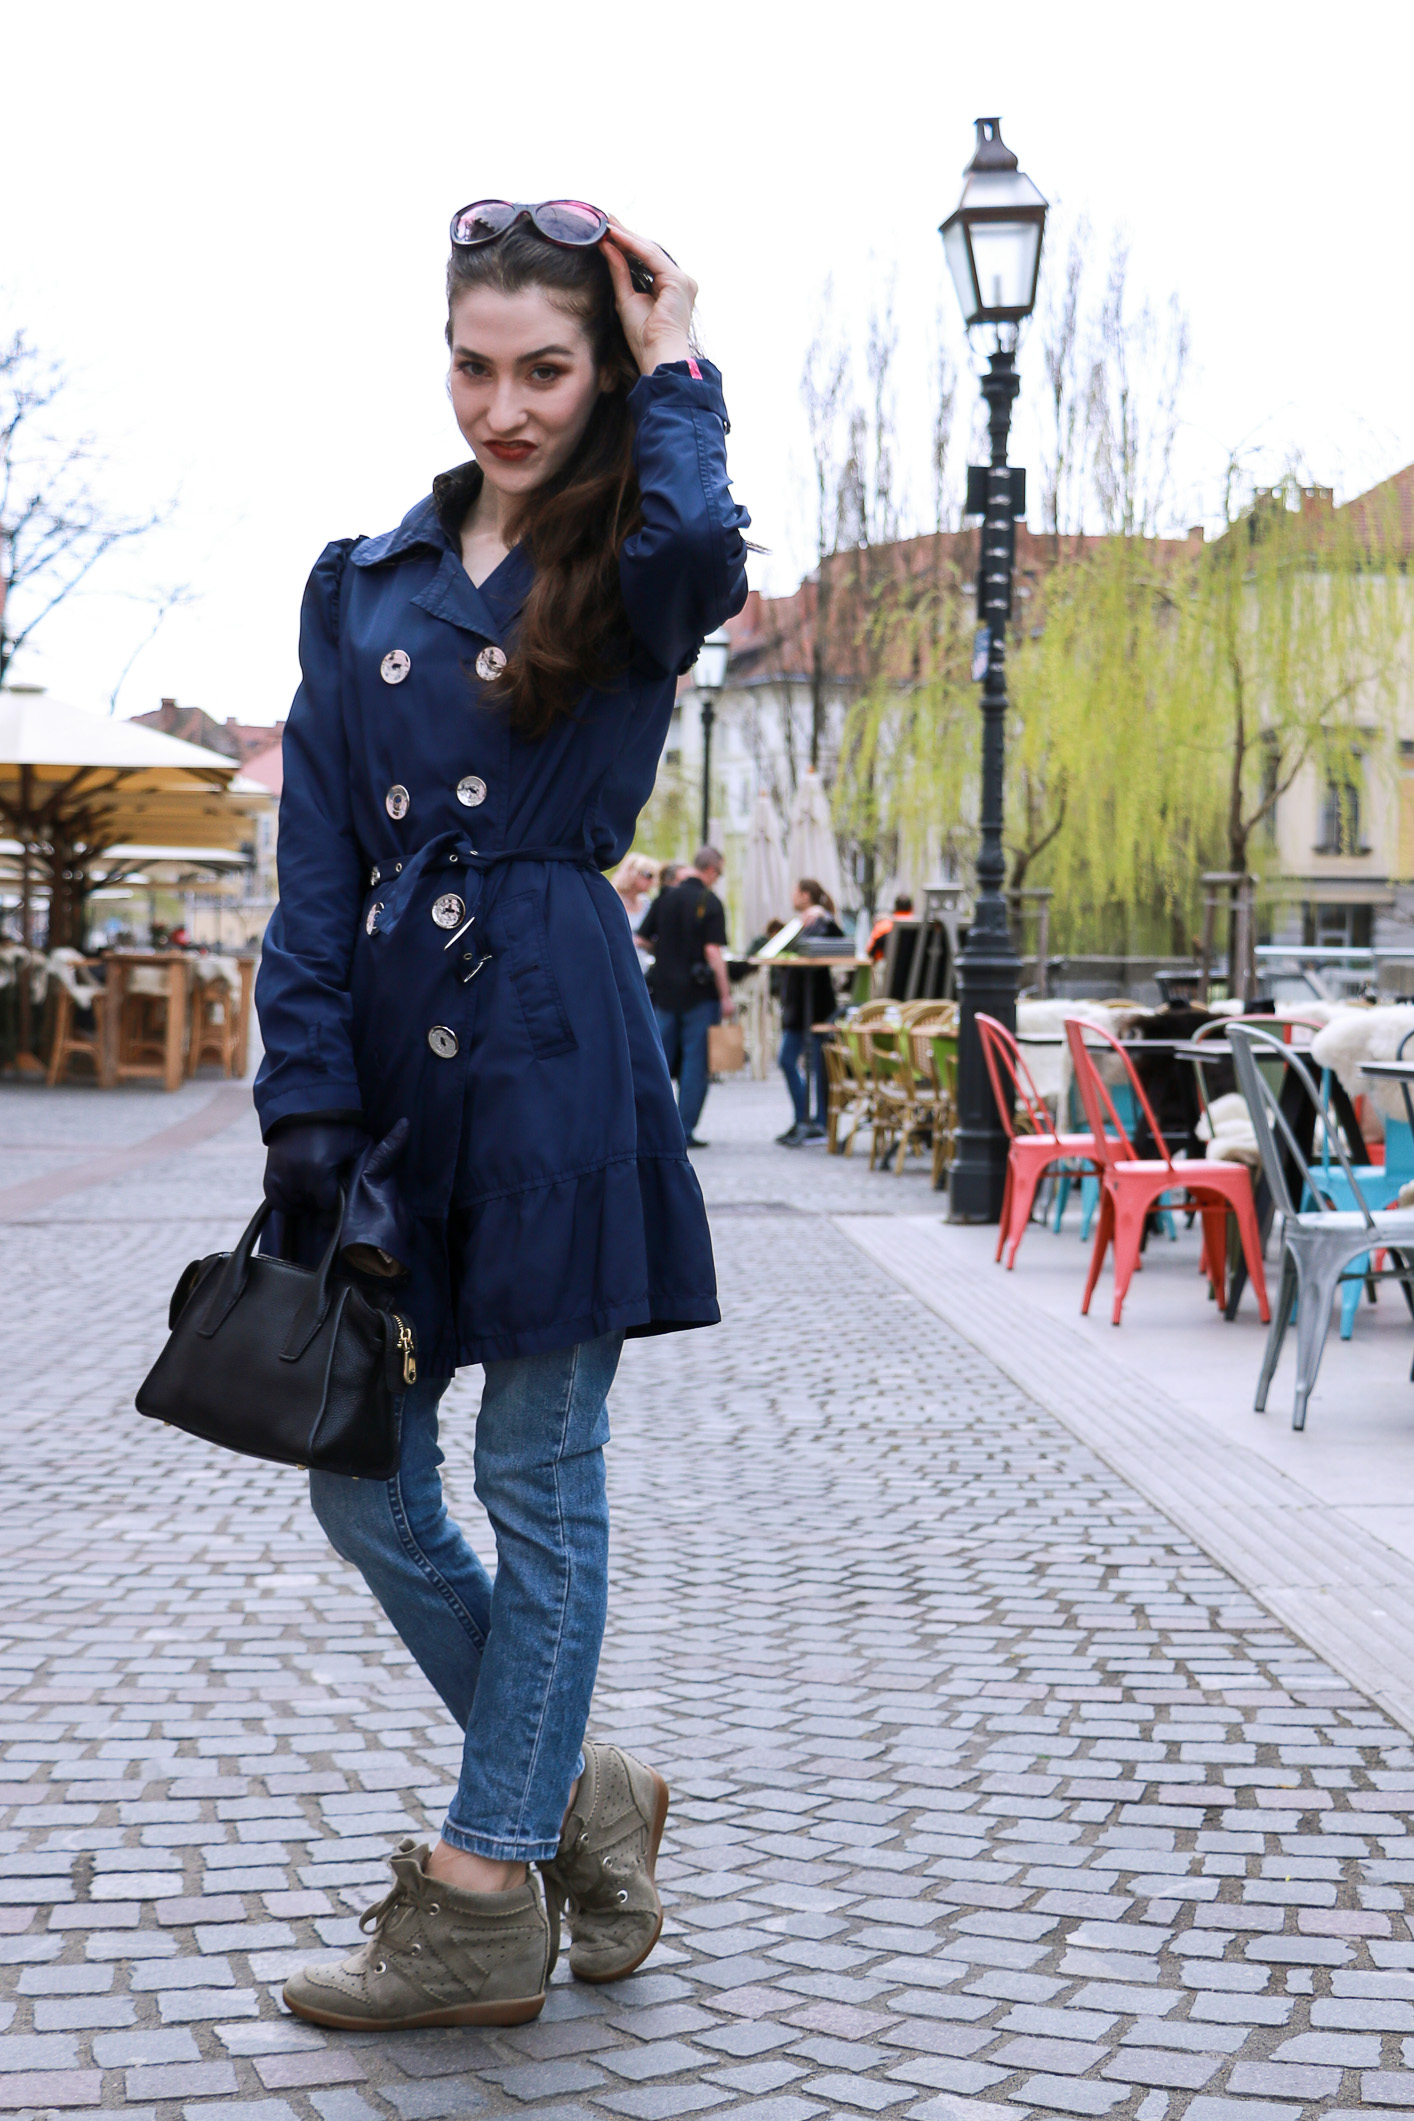 Fashion blogger Veronika Lipar of Brunette From Wall Street sharing her chic casual blue Friday outfit